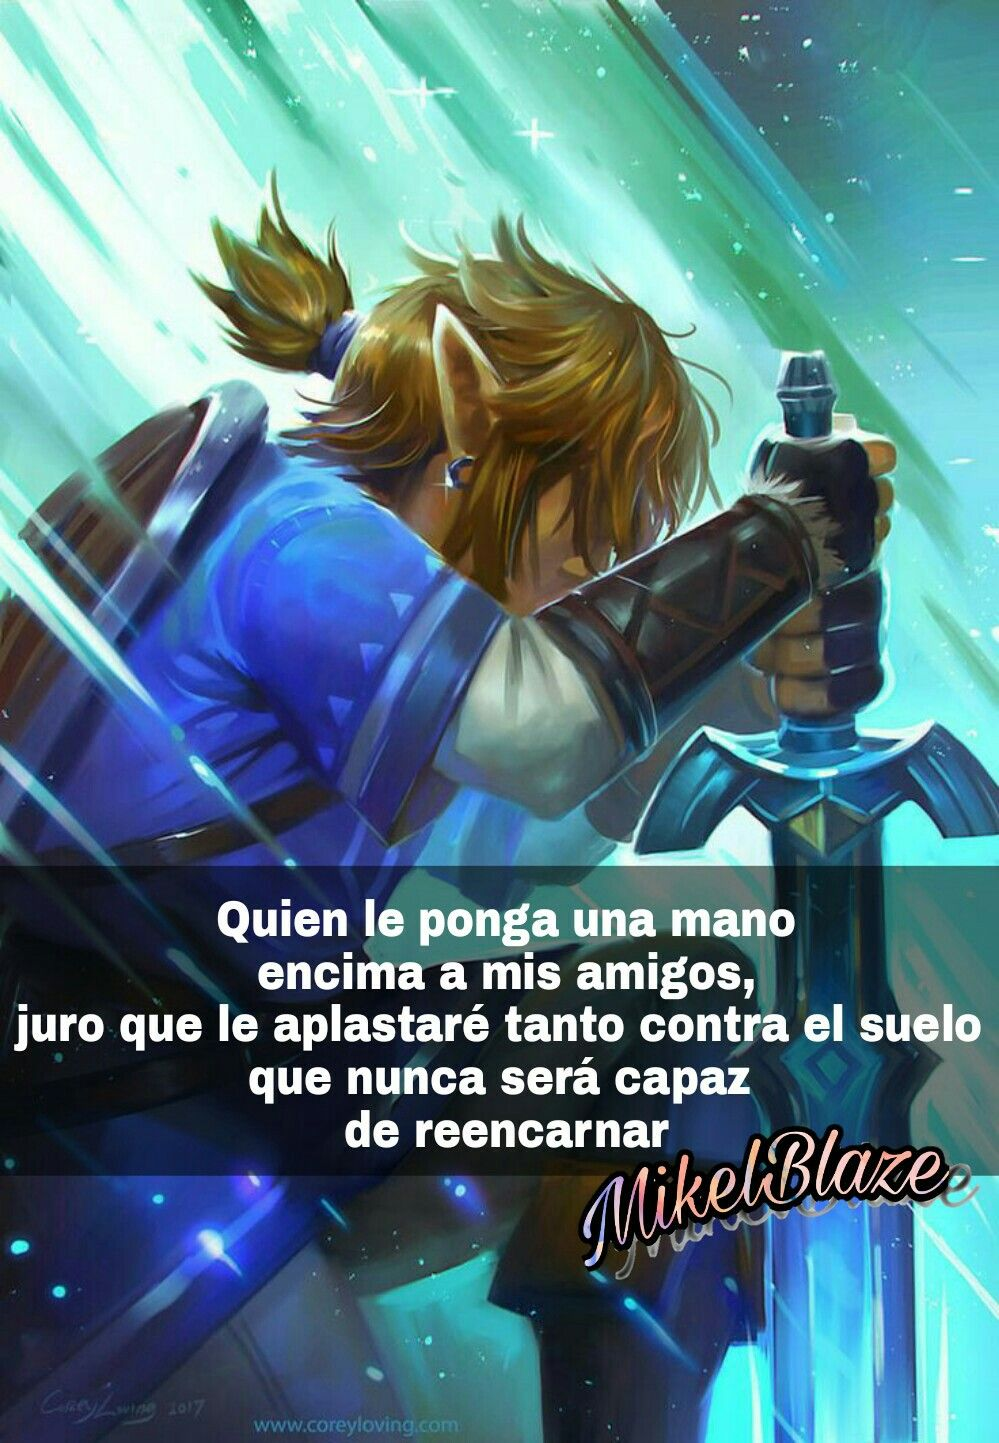 Frases Anime Amistad Proteger The Legend Of Zelda Breath Of The